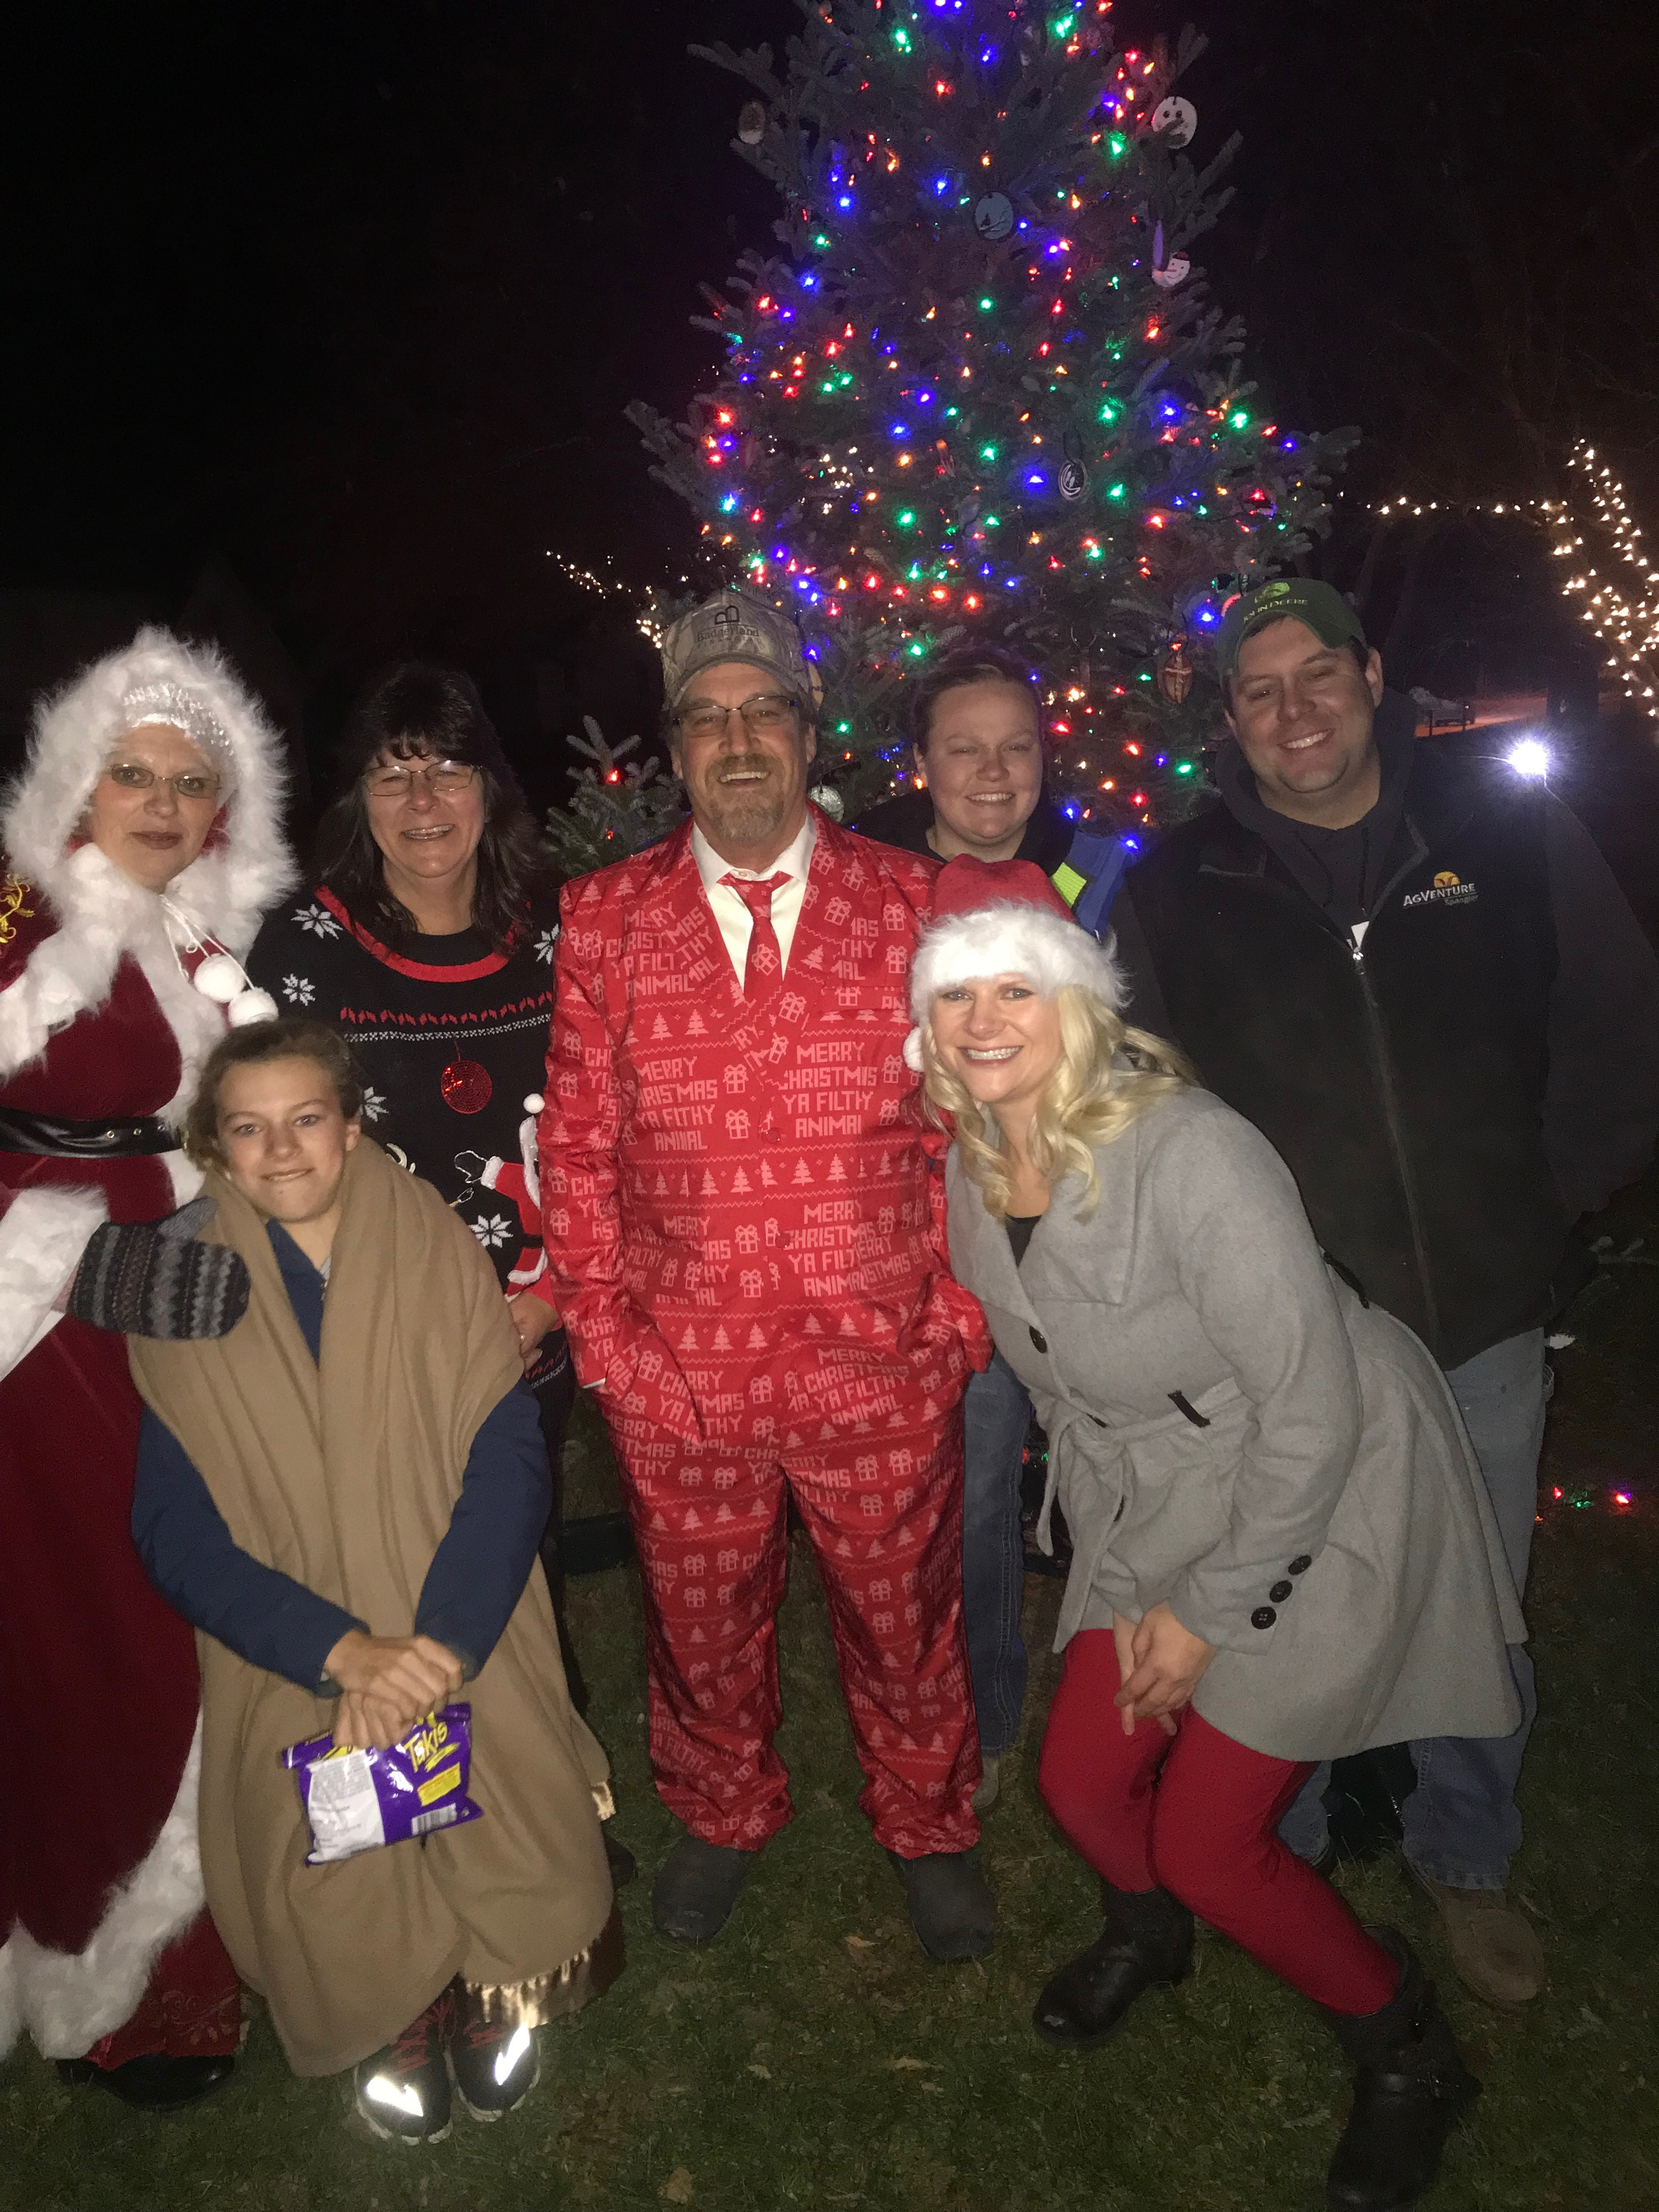 small town christmas tree lighting event in wisconsin